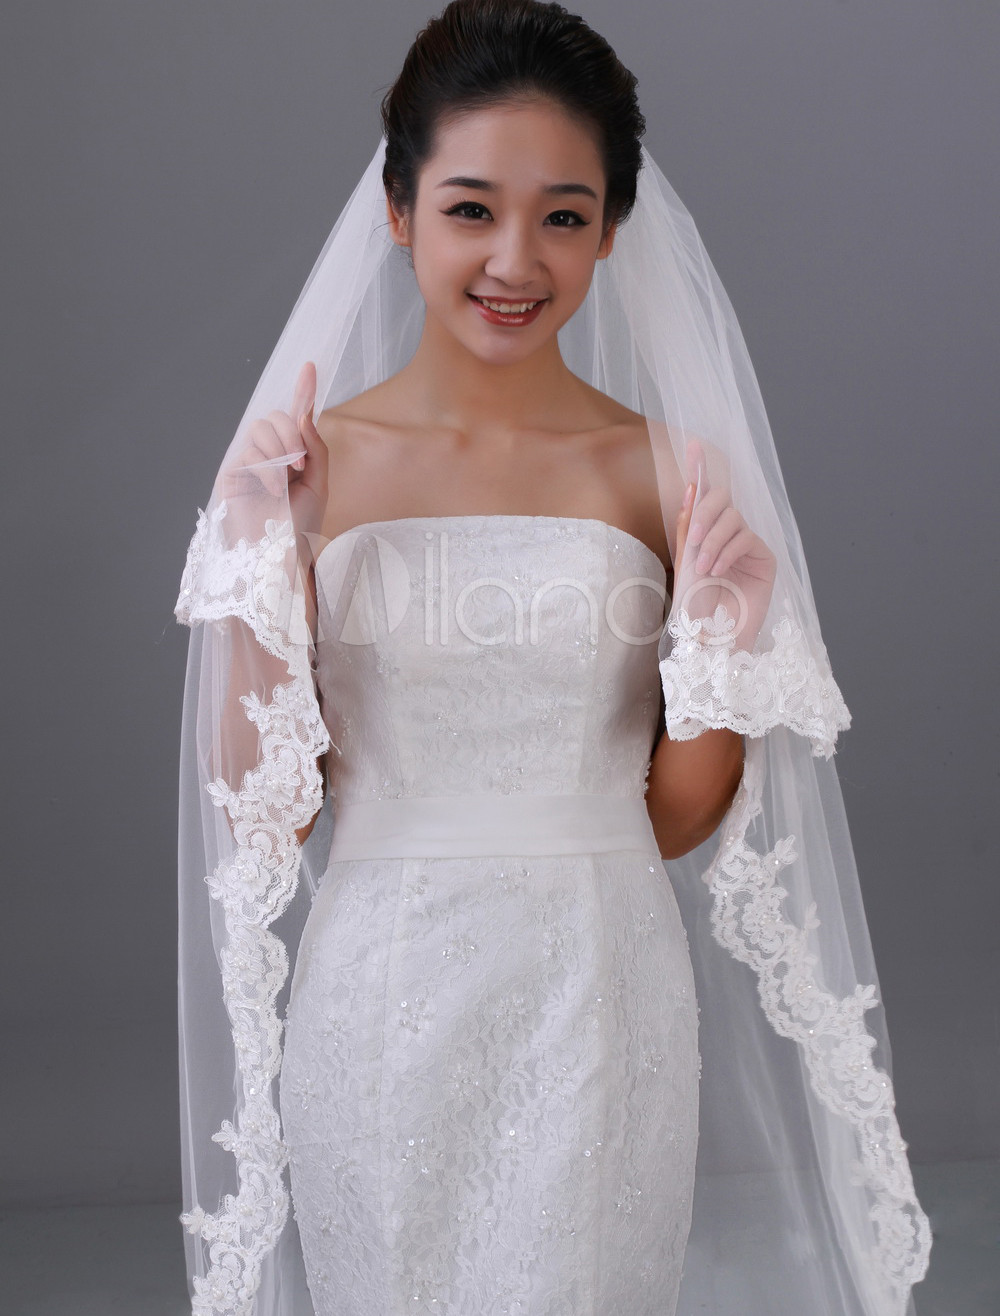 Amazing White Two-Tier Embroidery Tulle Wedding Veil